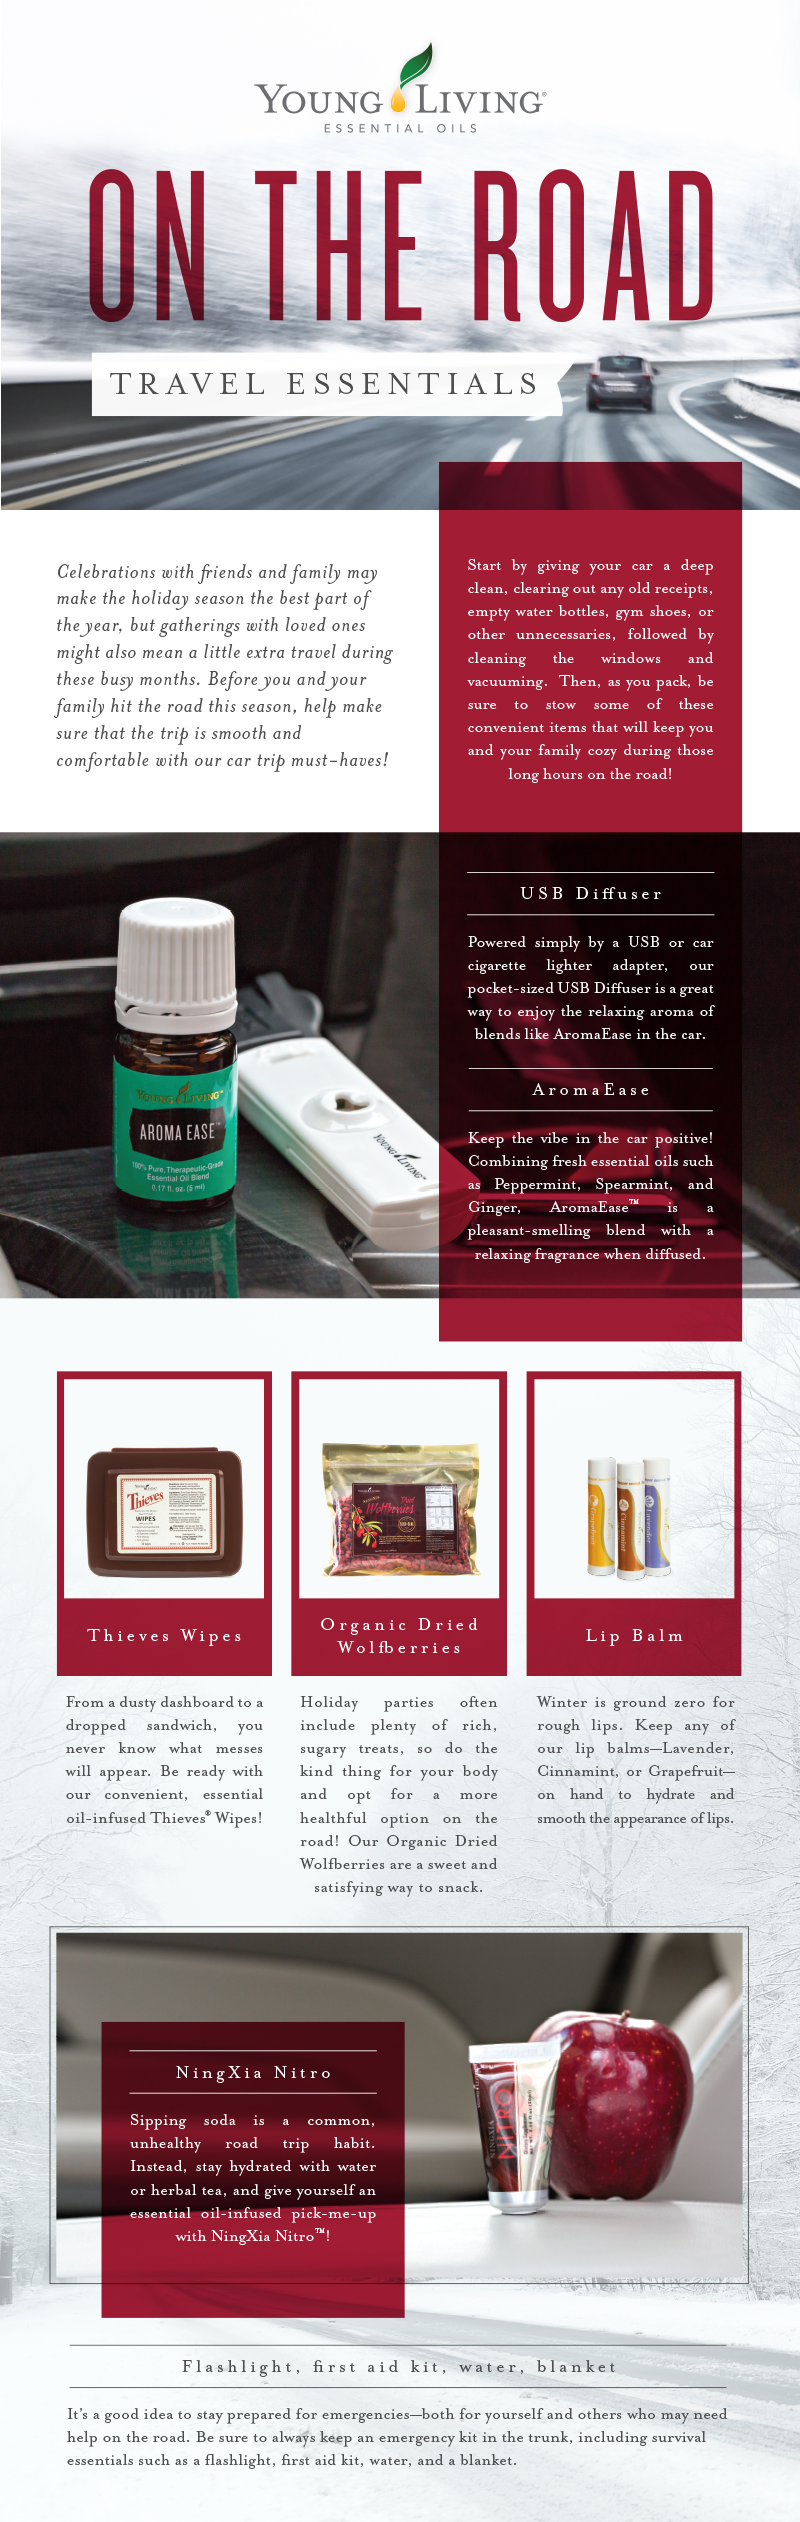 Young Living Travel Essentials - on-the-road-travel-essentials-infographic